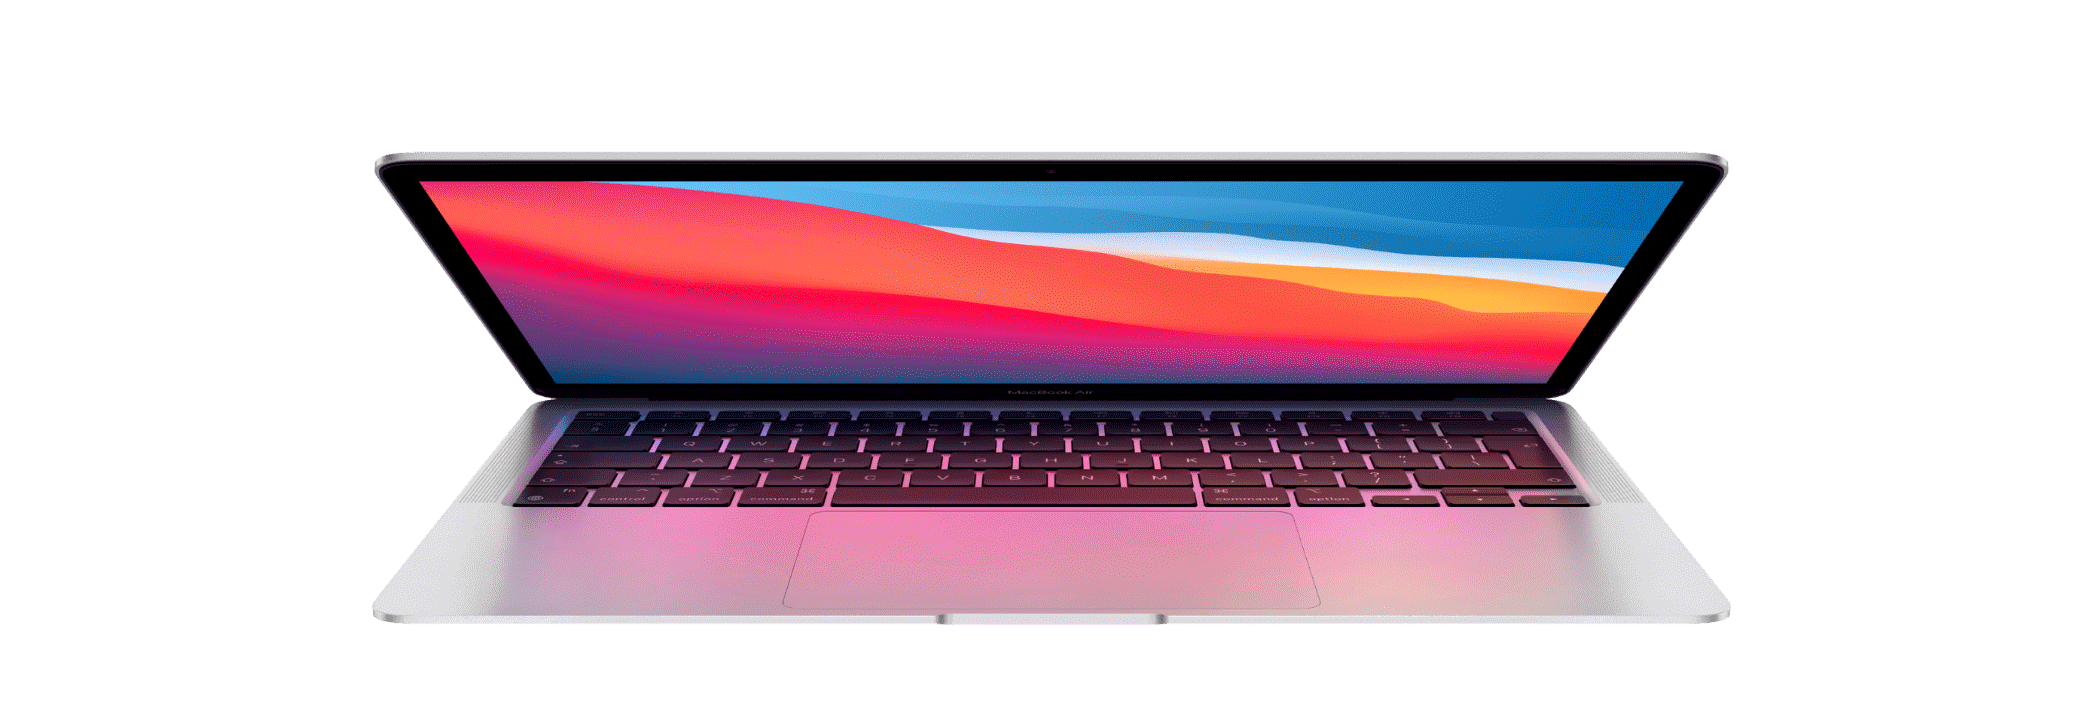 Personal computer, Input device, Space bar, Laptop accessory, Office equipment, Touchpad, Gadget